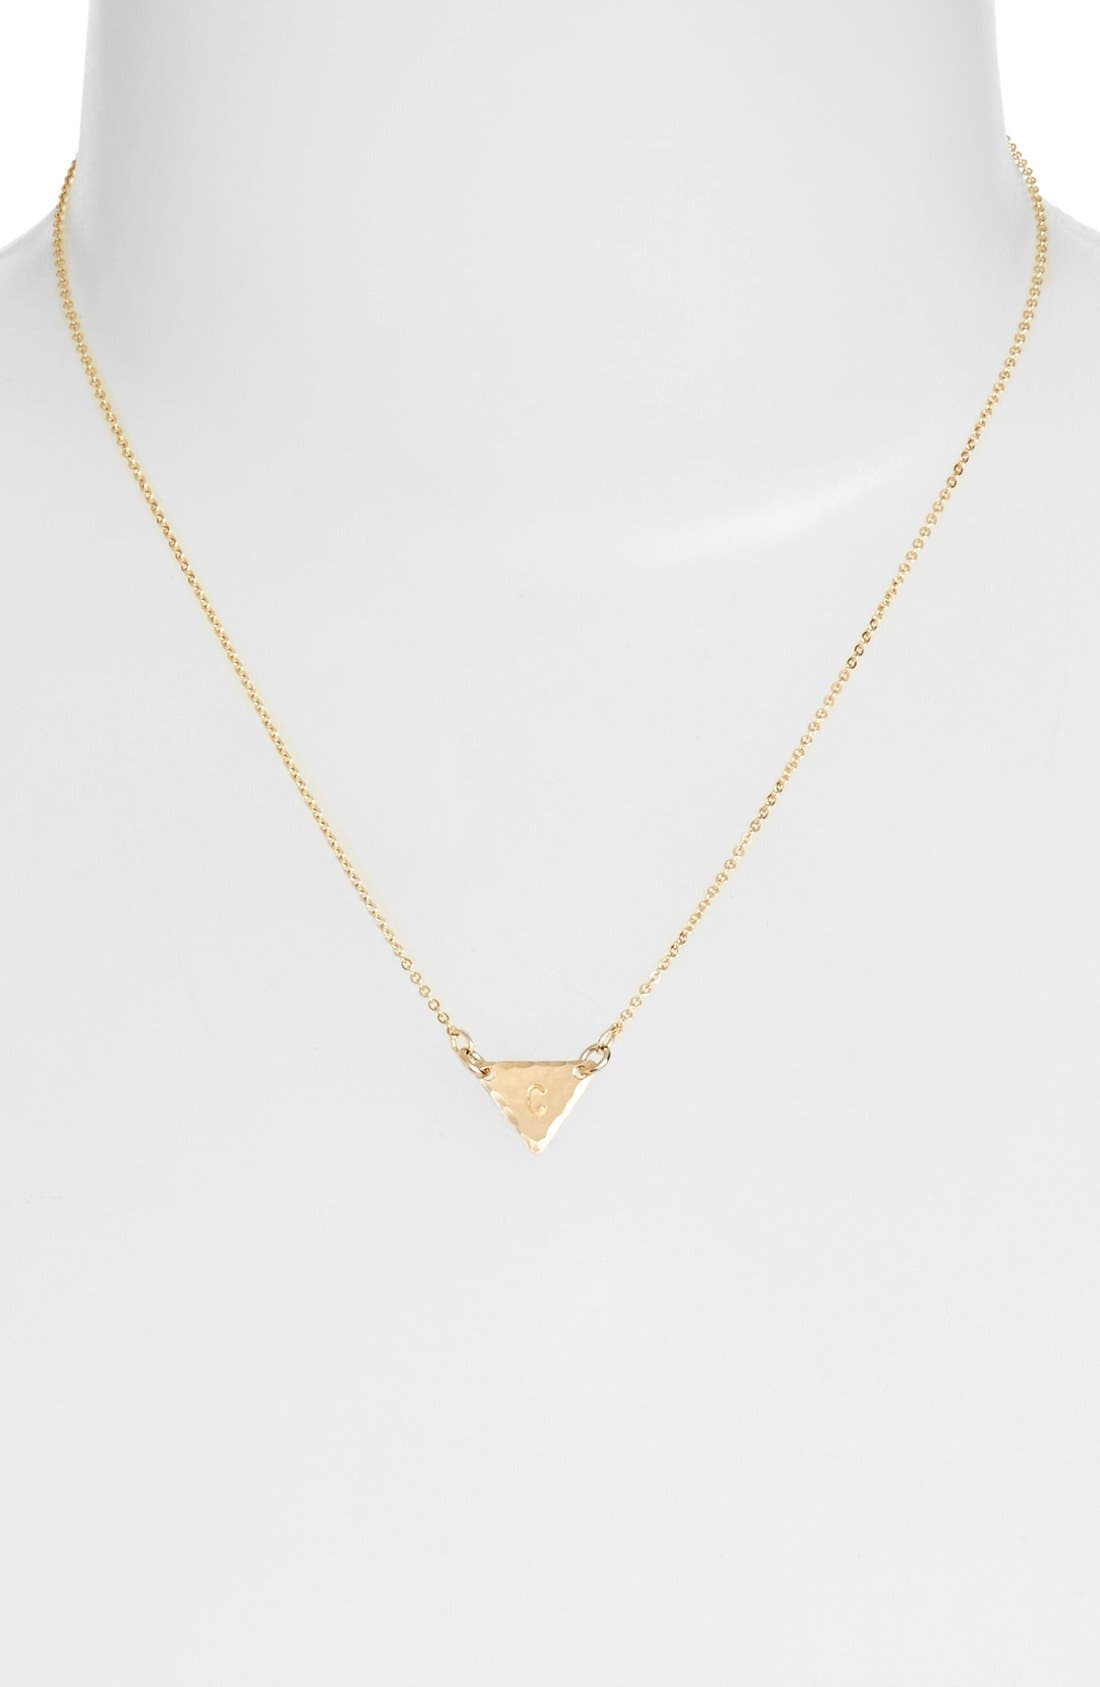 14k-Gold Fill Initial Triangle Necklace,                             Alternate thumbnail 29, color,